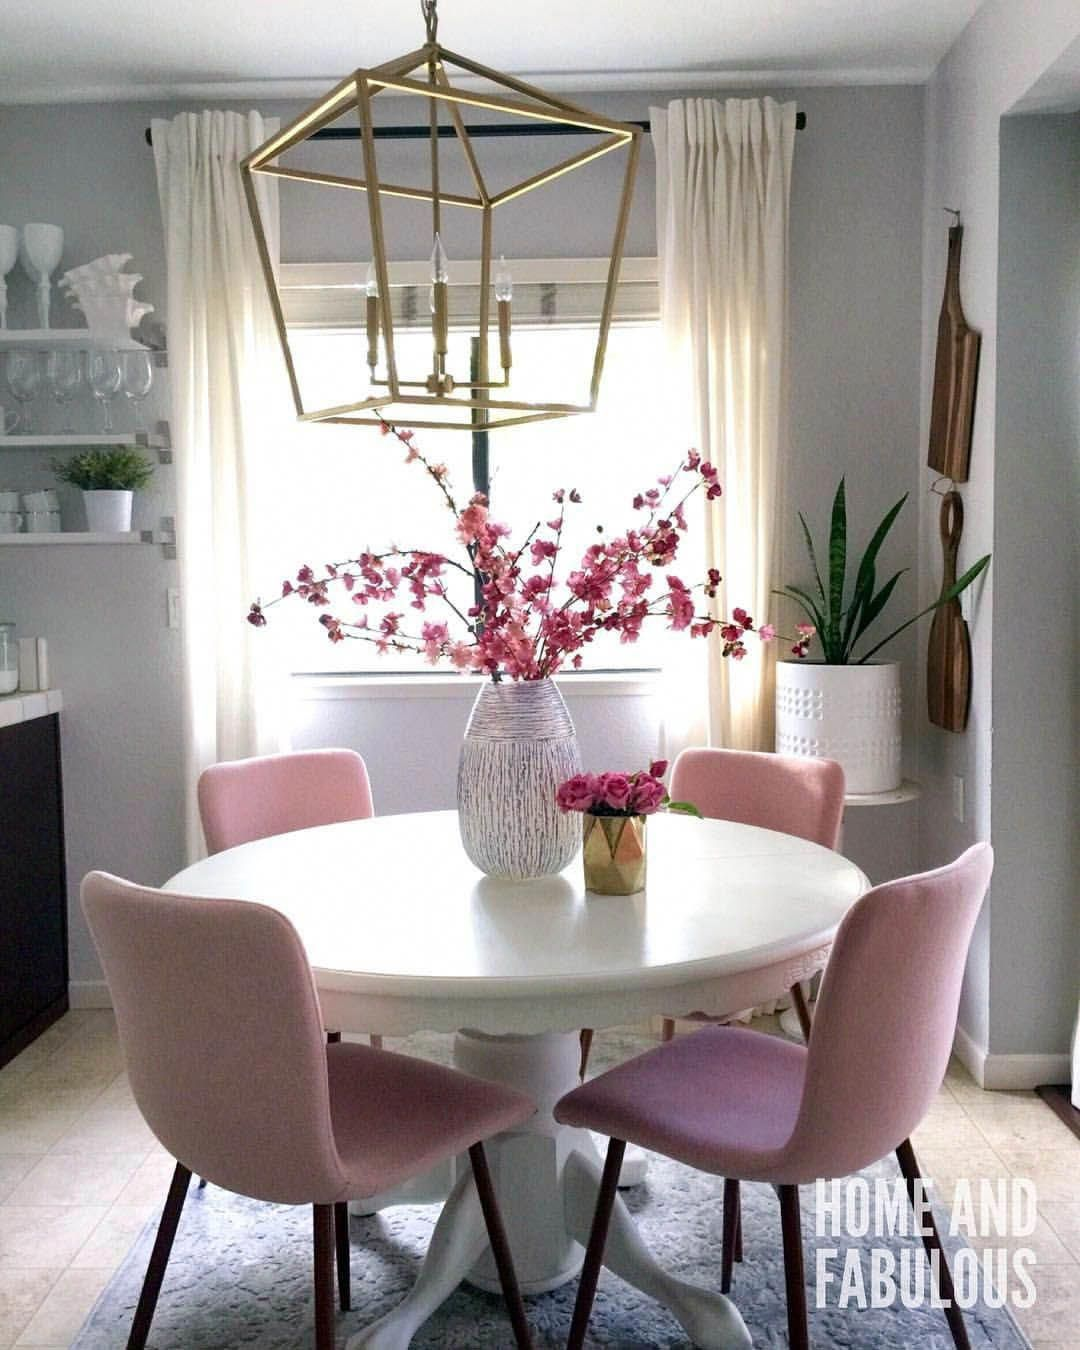 Good Dining Room Chairs Walmart Made Easy Diningroomdecor Pink Home Decor Dining Room Small Home Decor